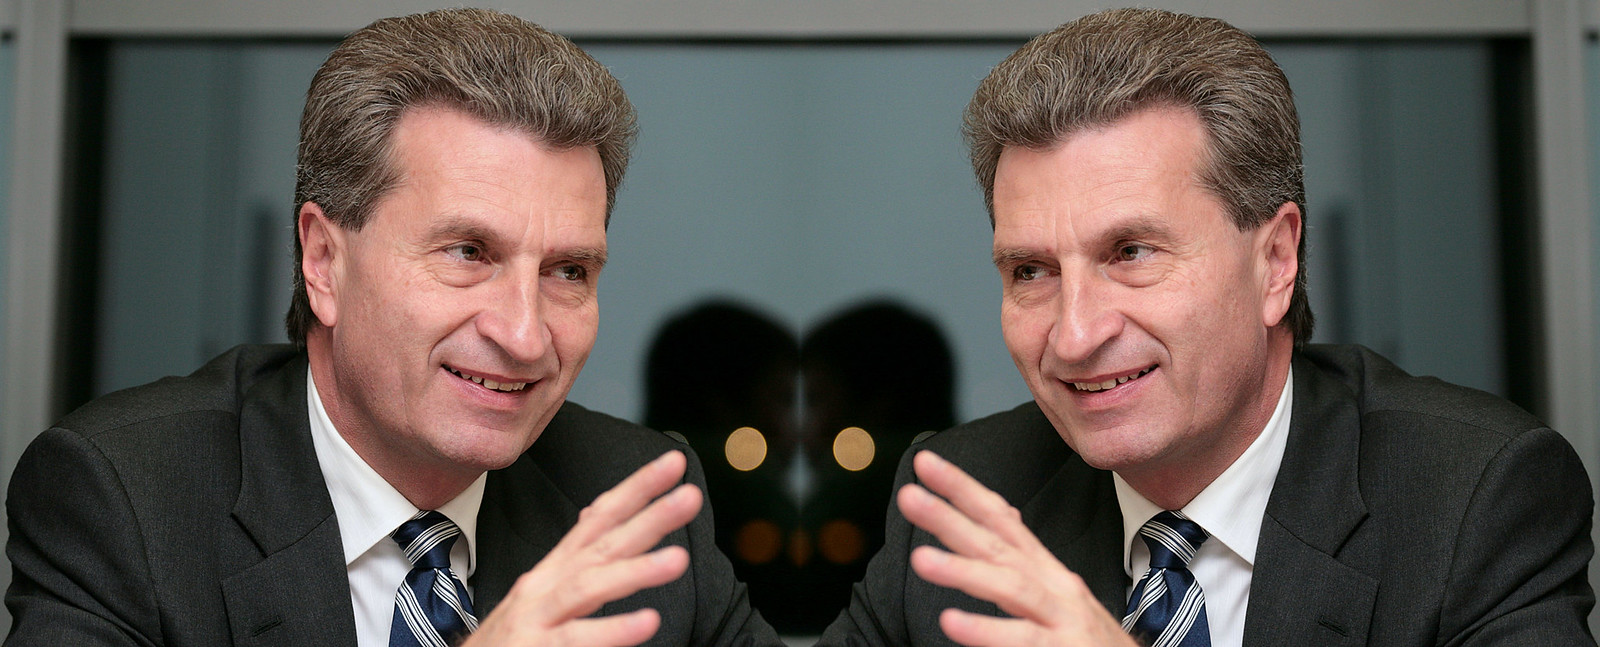 Half serious Günther Oettinger.